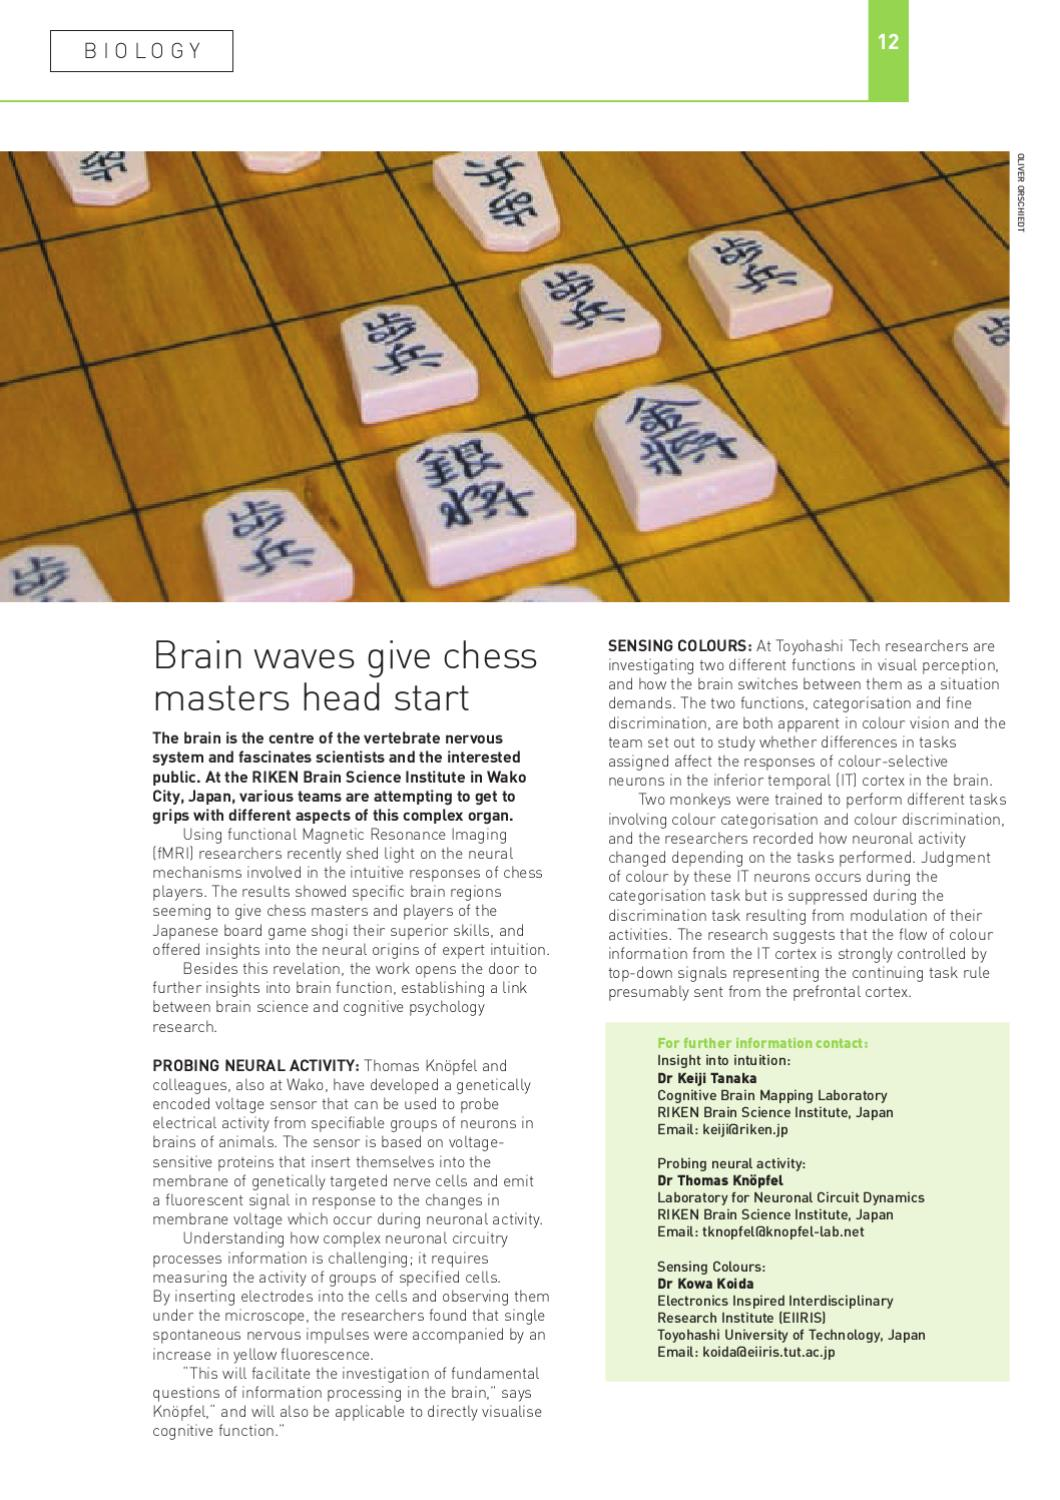 Asia Research News 2011 by Asia Research News - issuu